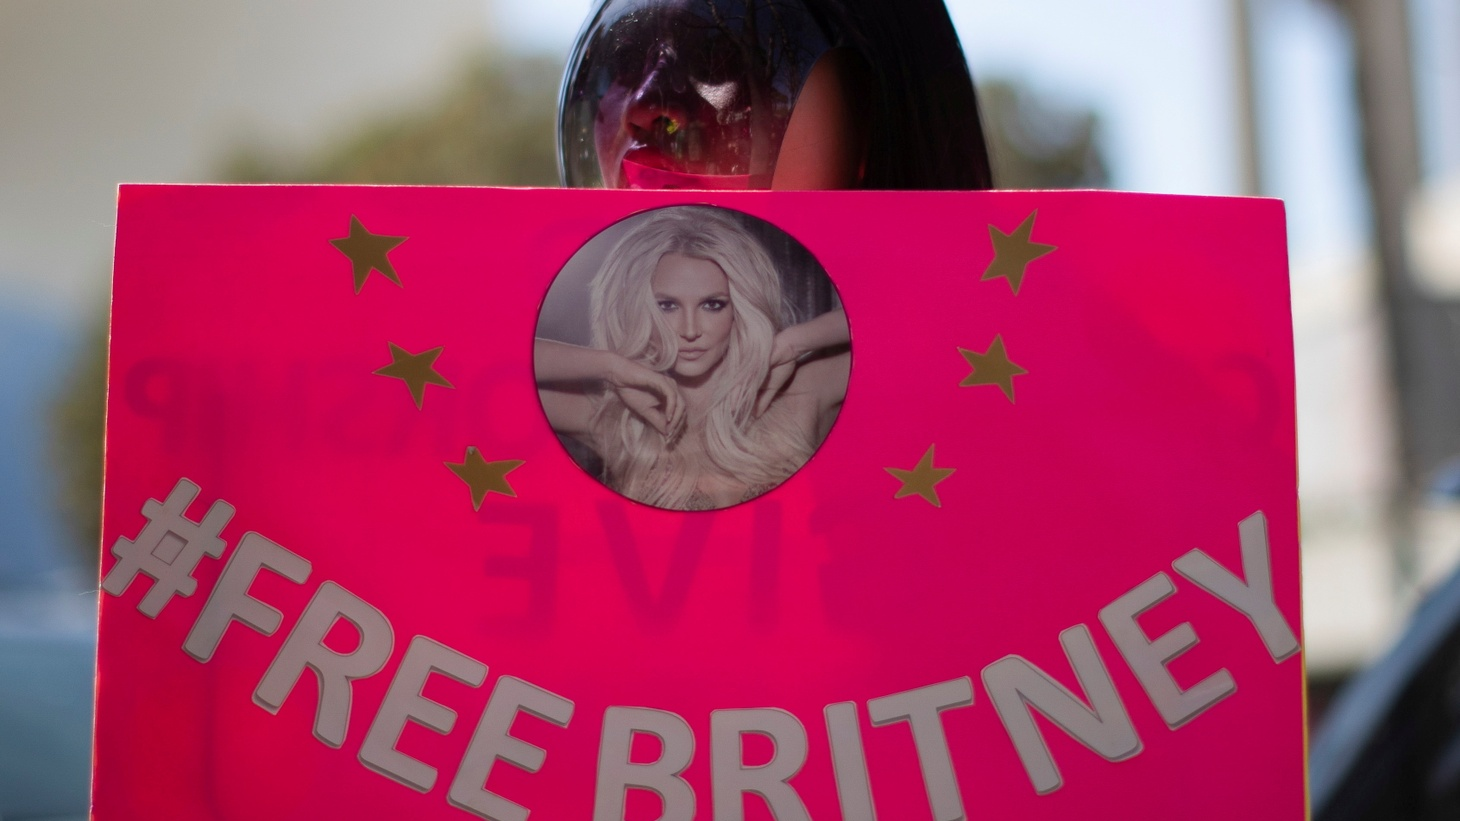 A supporter wearing a personal protective face shield holds a sign while rallying for pop star Britney Spears during a conservatorship case hearing at Stanley Mosk Courthouse in Los Angeles, California, U.S., March 17, 2021.